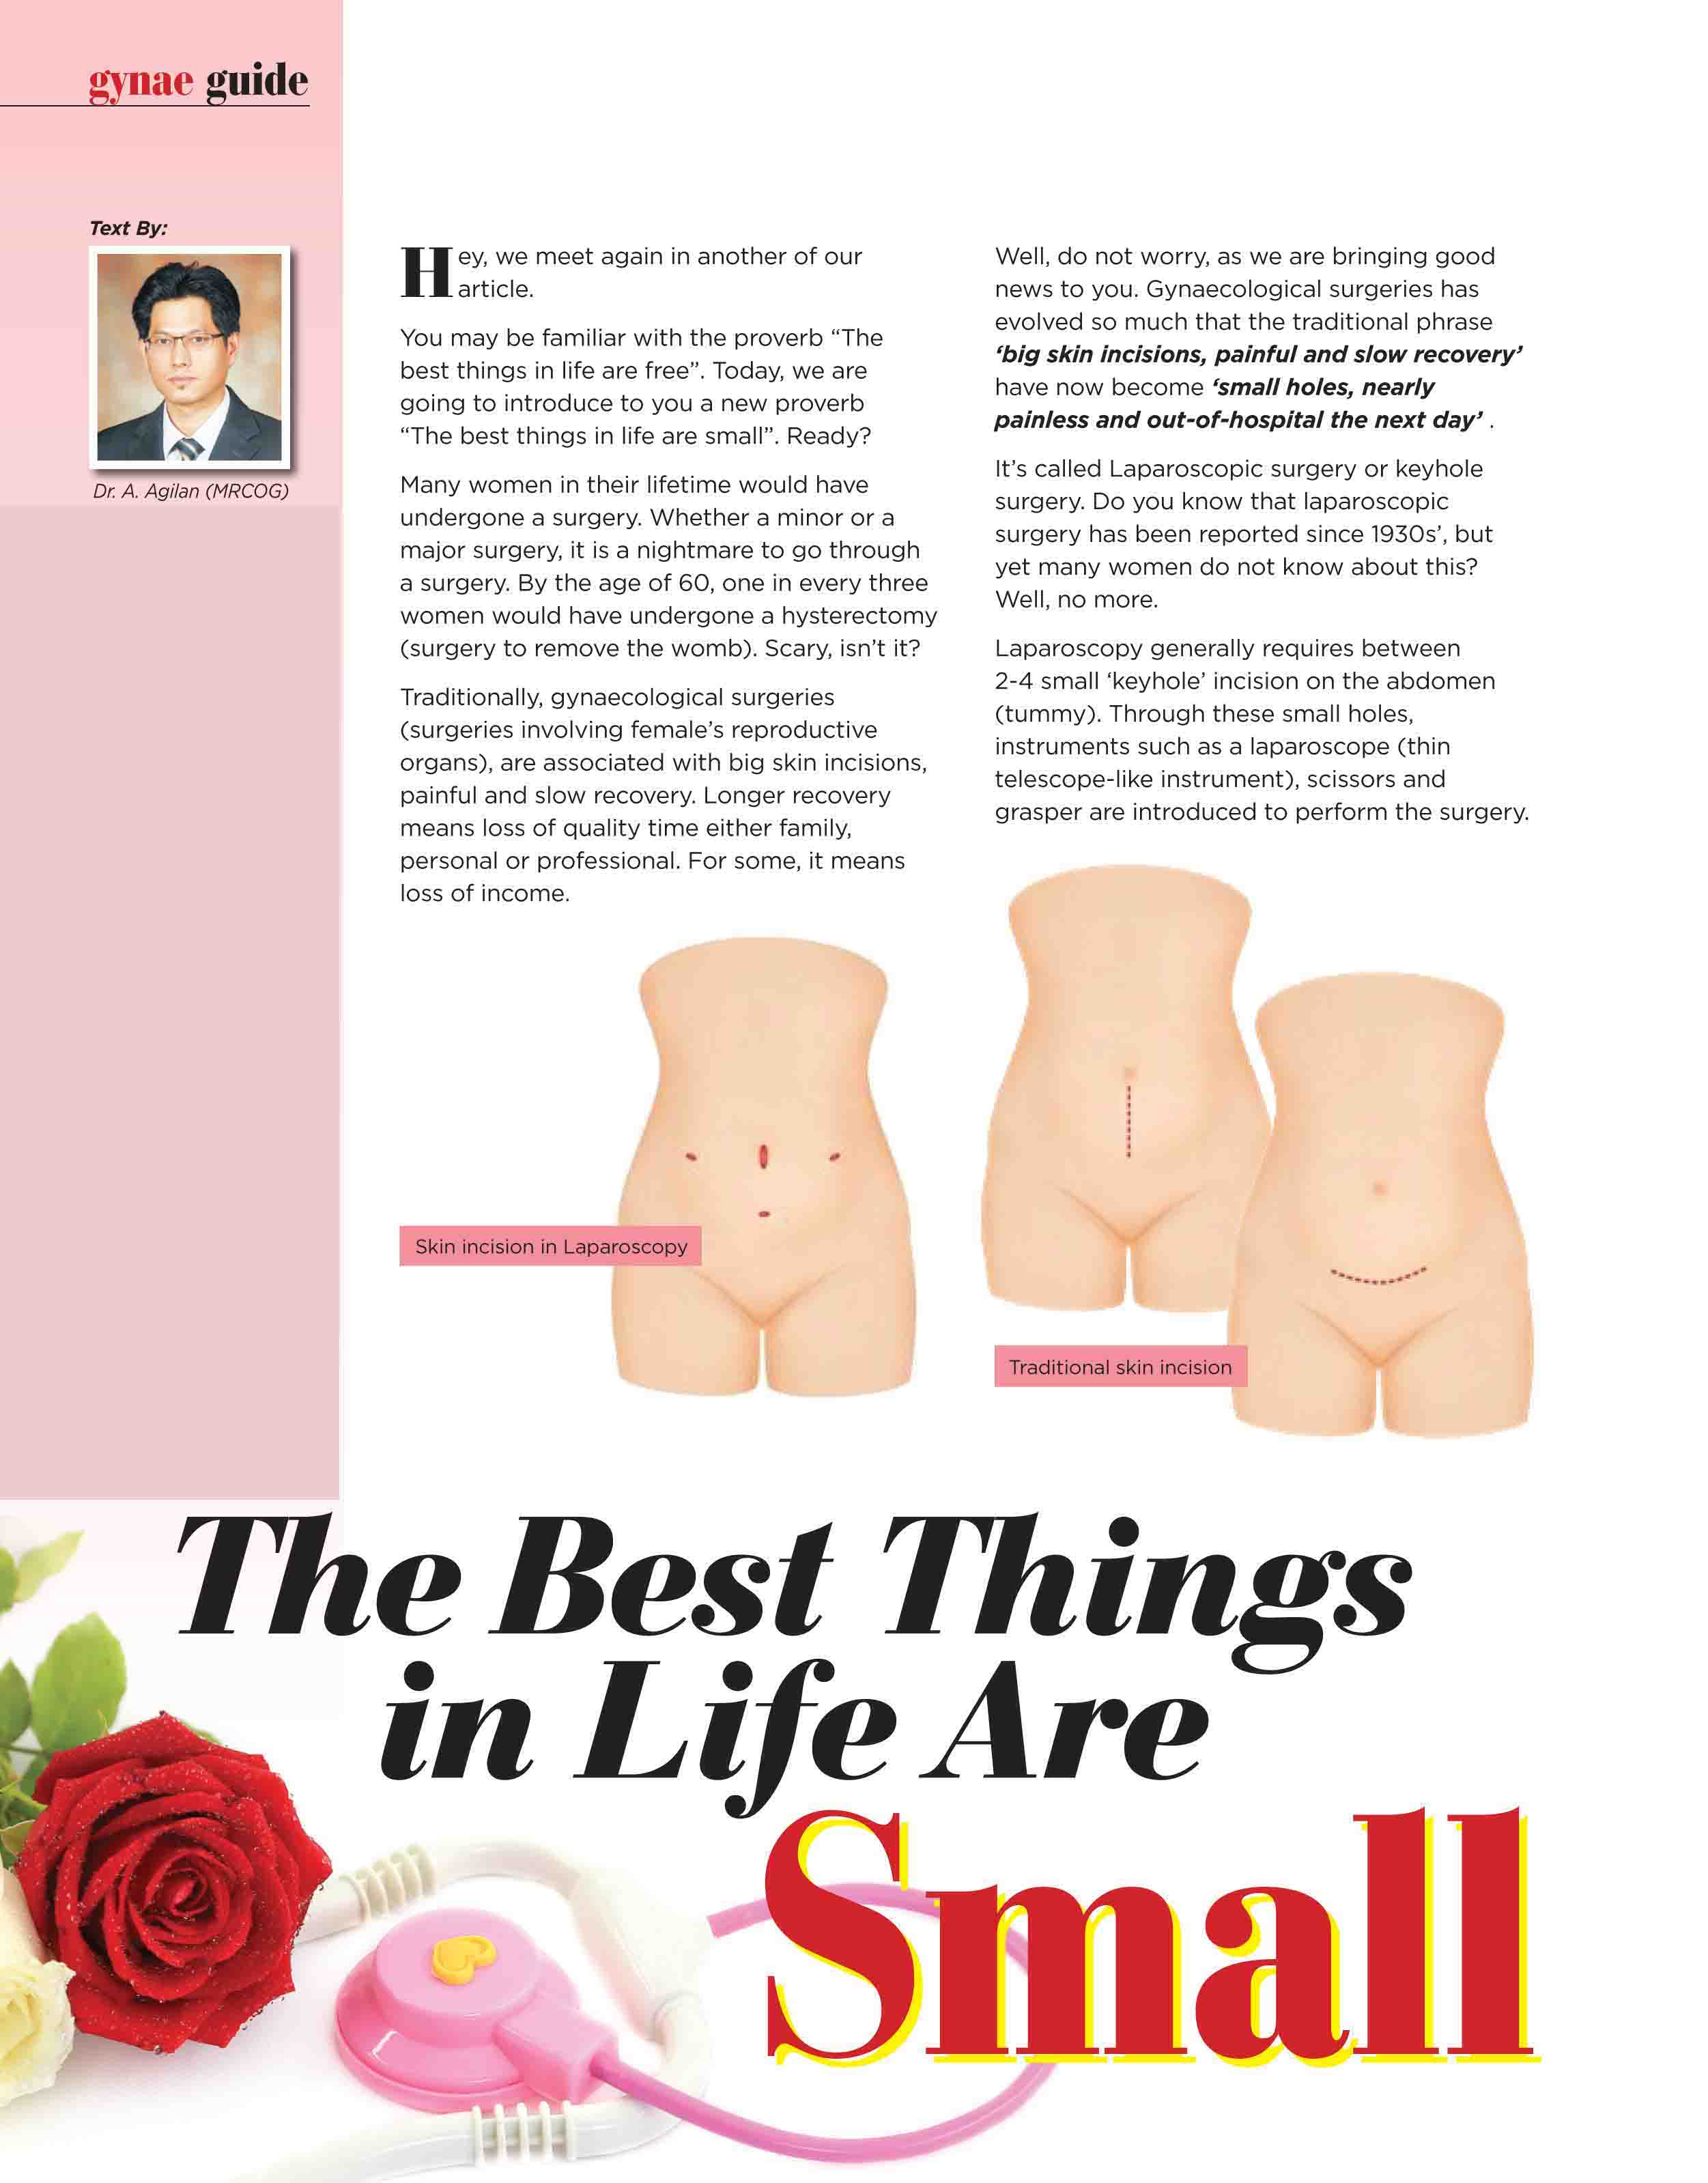 Laparoscopy (Key hole) Surgery (Parenthood Magazine)